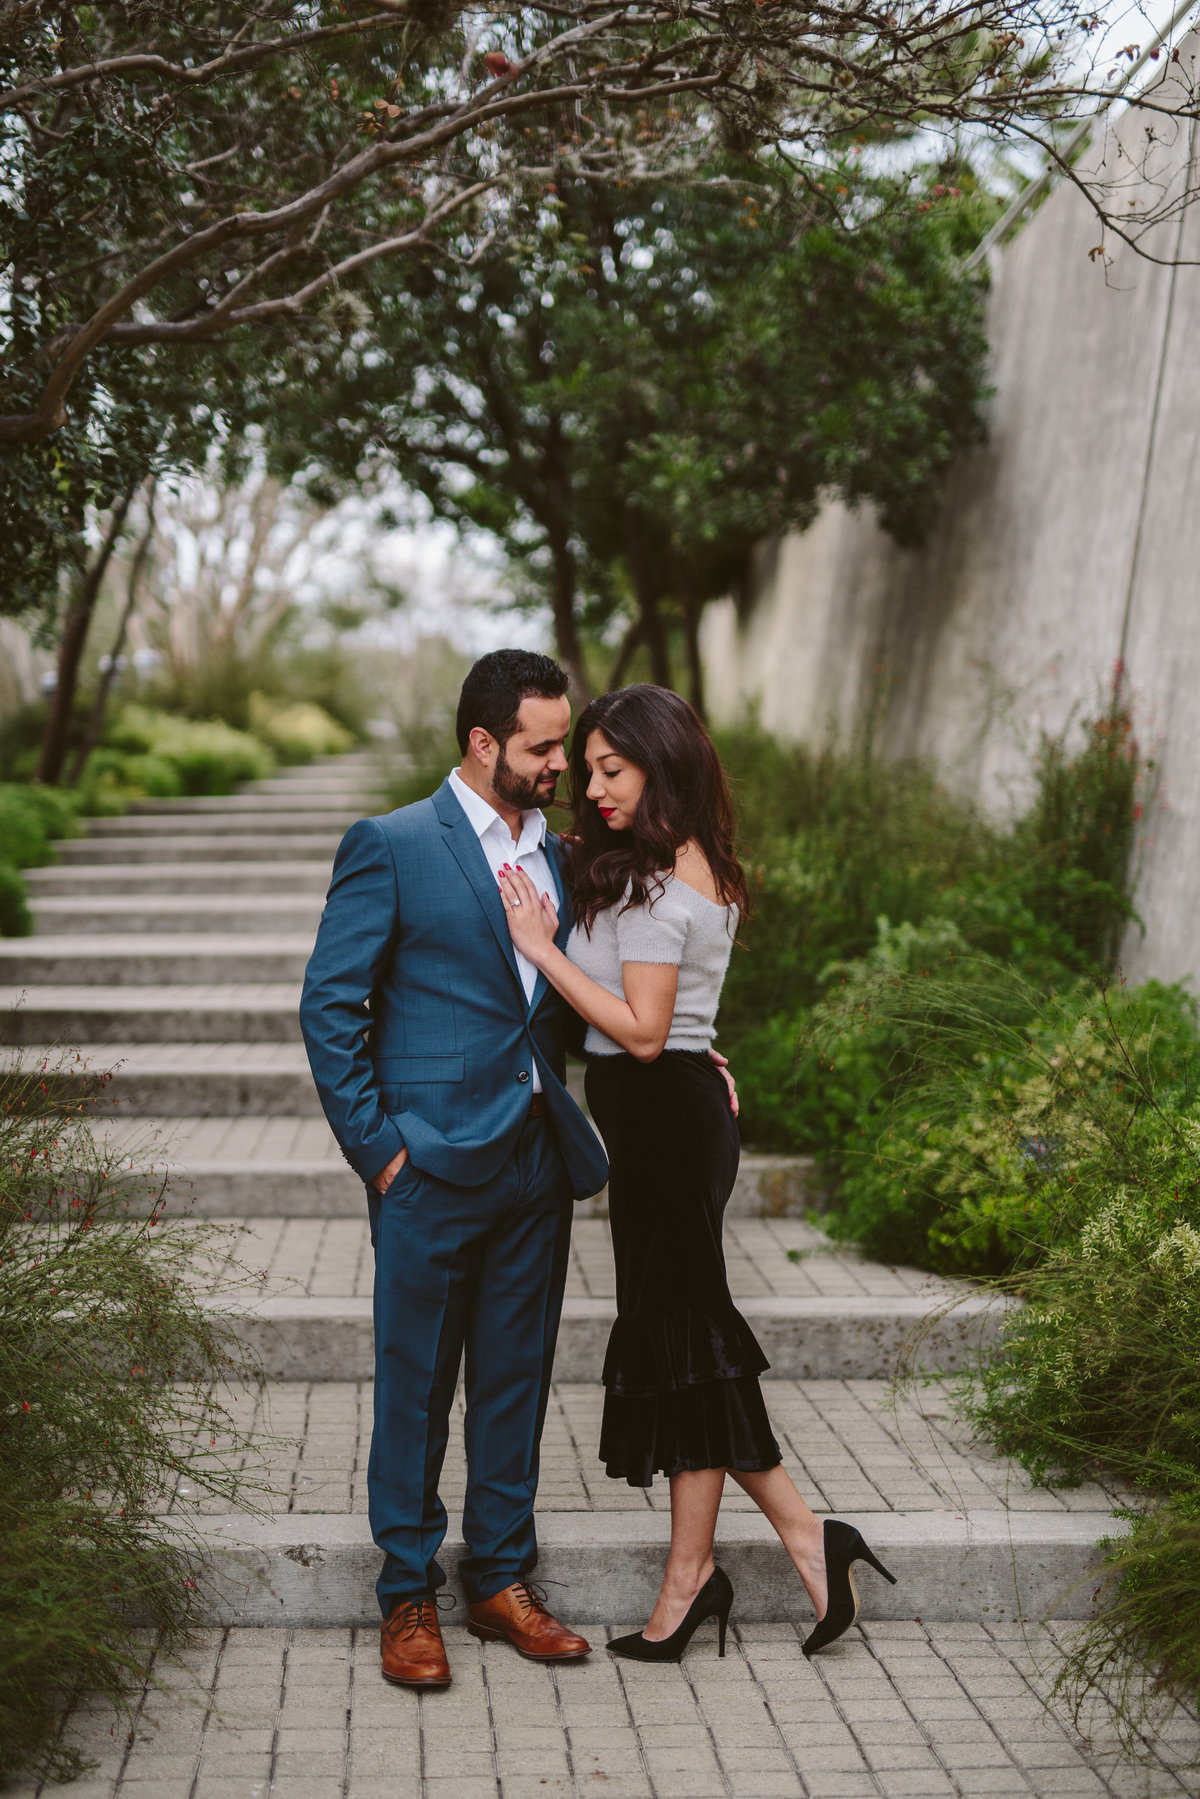 Woman with her hand on fiancé's chest over his heart and standing on steps at the San Antonio Botanical Garden.